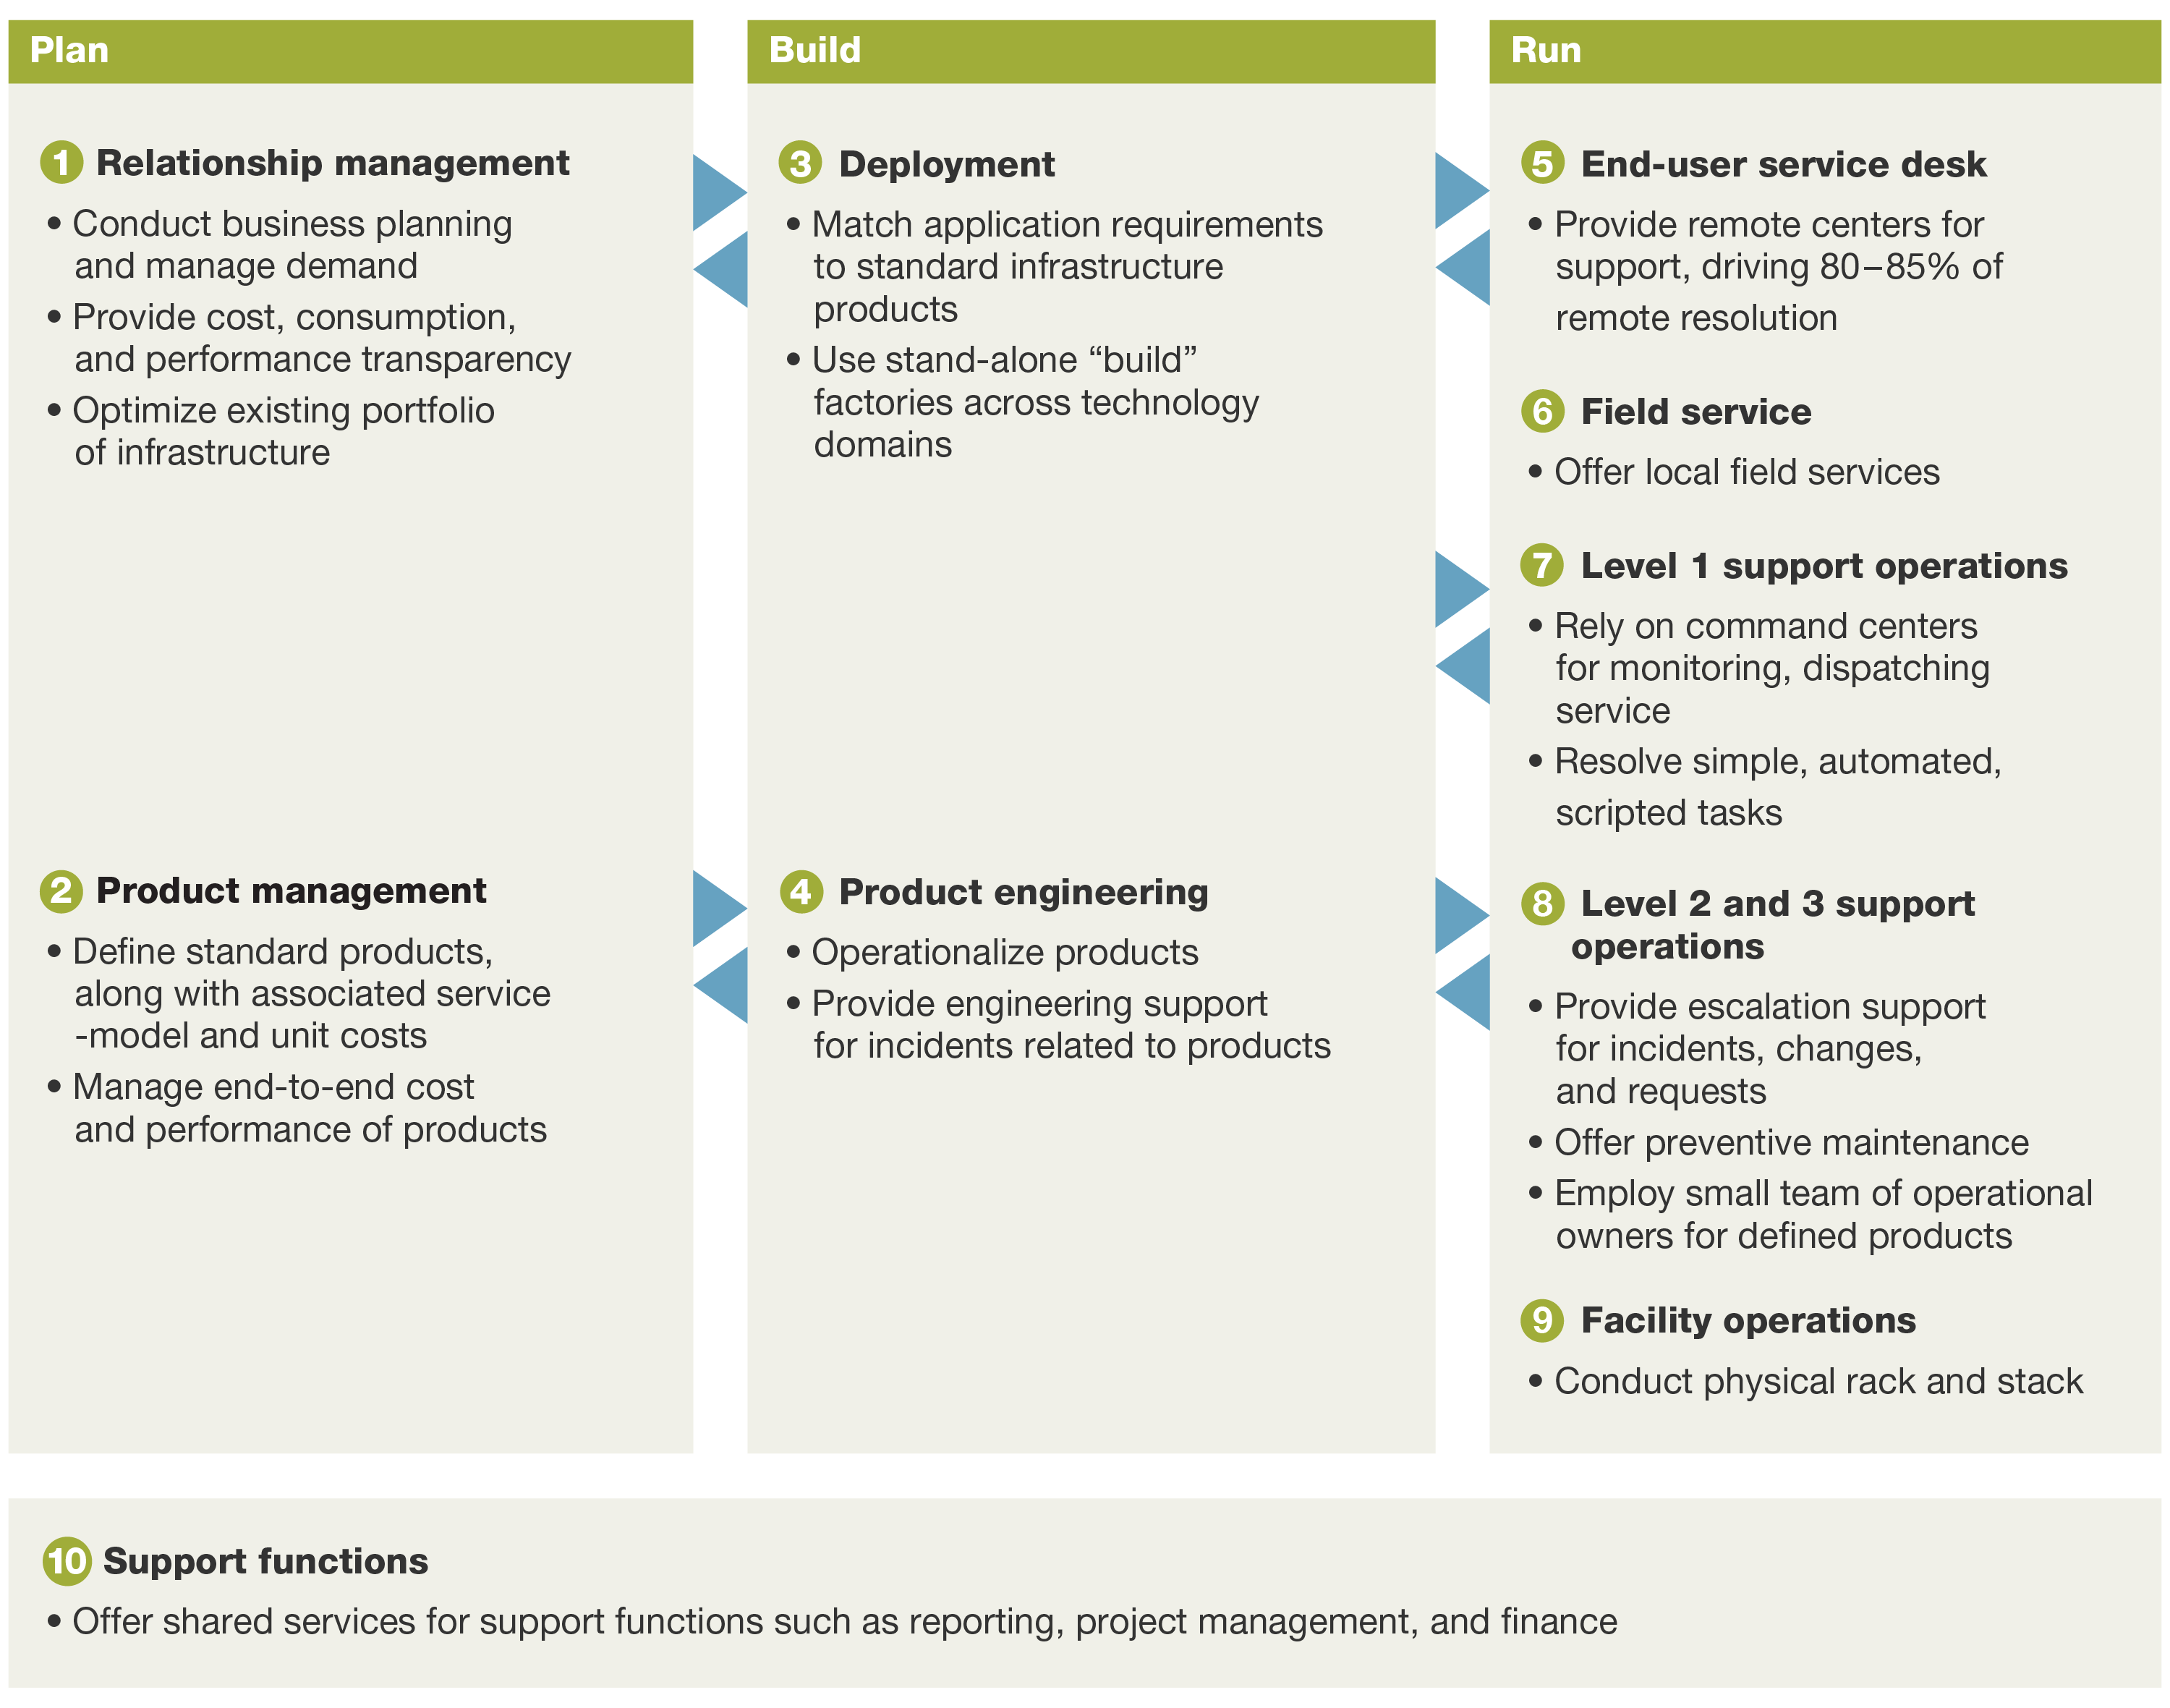 mckinsey model The mckinsey 7-s model shows why you can't change any one aspect of an organization in isolation find out what the ss stand for, and how to use the model.